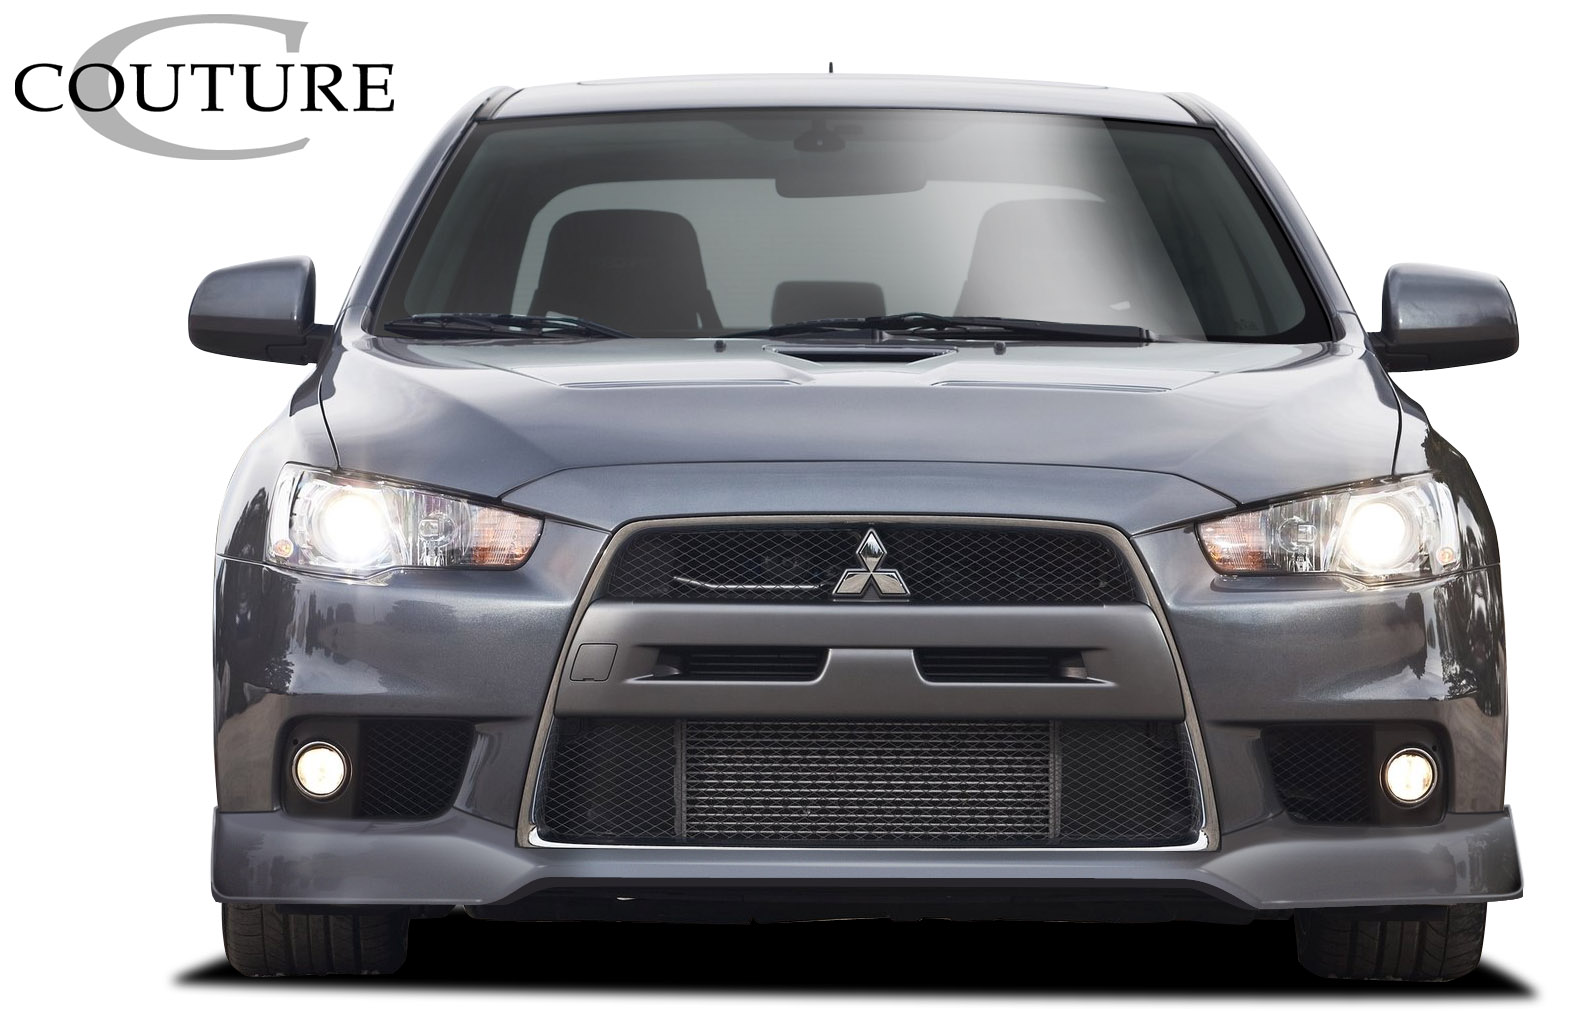 Front Lip/Add On Bodykit for 2015 Mitsubishi Evolution ALL - Mitsubishi Lancer Evolution 10 Couture Vortex Front Lip Under Spoiler Air Dam - 1 Piece